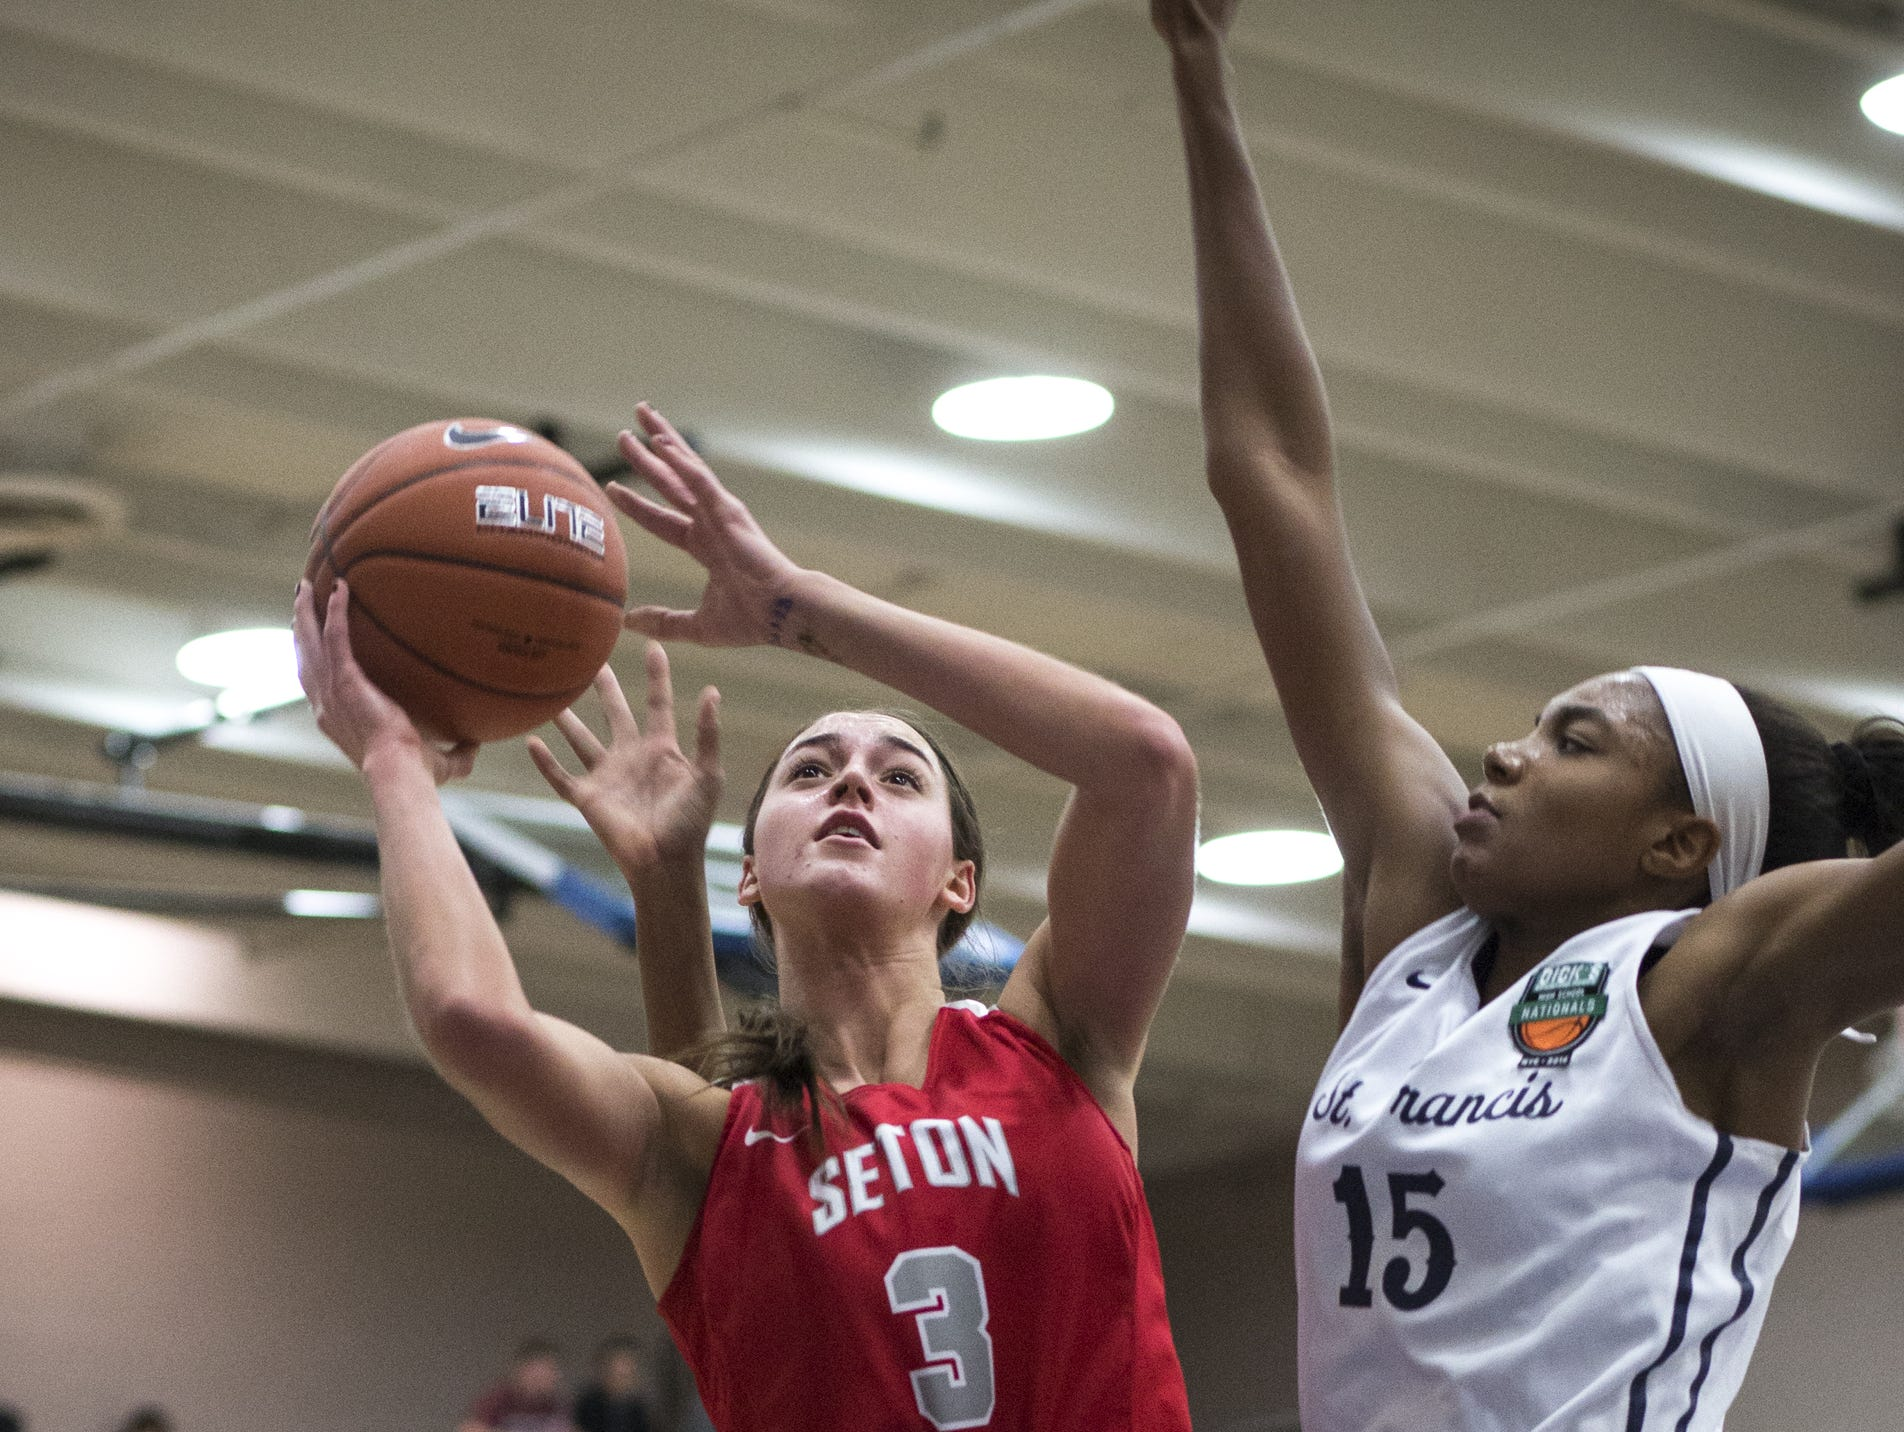 Jennifer Wirth (left, Seton Catholic) takes a shot against Maya Dodson (St. Francis), December 19, 2016, during the Nike Tournament of Champions (Joe Smith bracket) game at Mesquite High School, 500 S. McQueen Road, Gilbert.